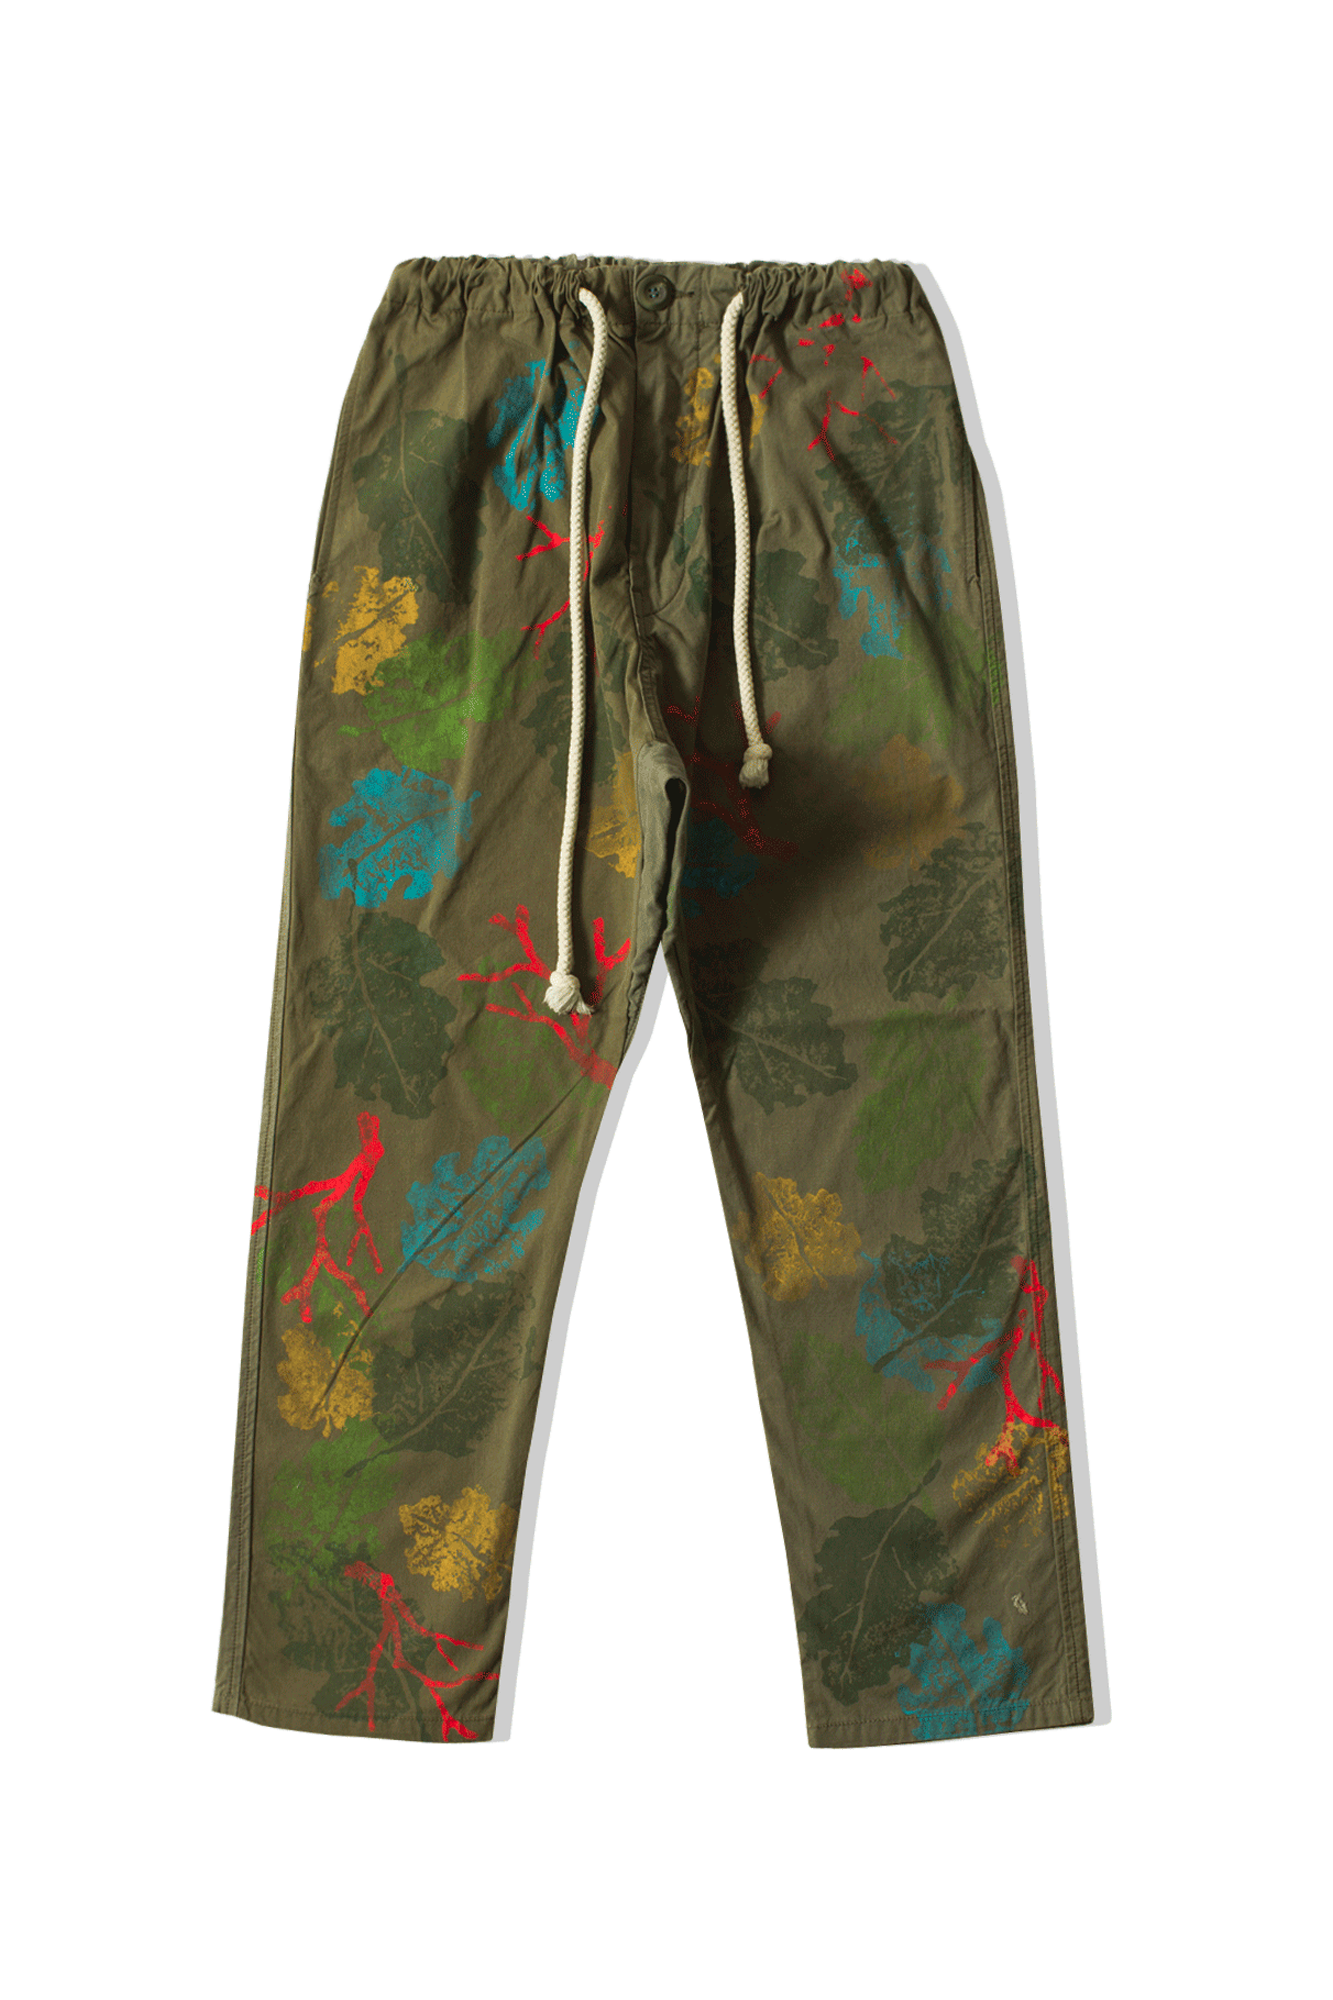 Dr. Collectors Trousers Camo Hand Painted Pants Green P17CAMO#HAND#PAINT#XS - One Block Down